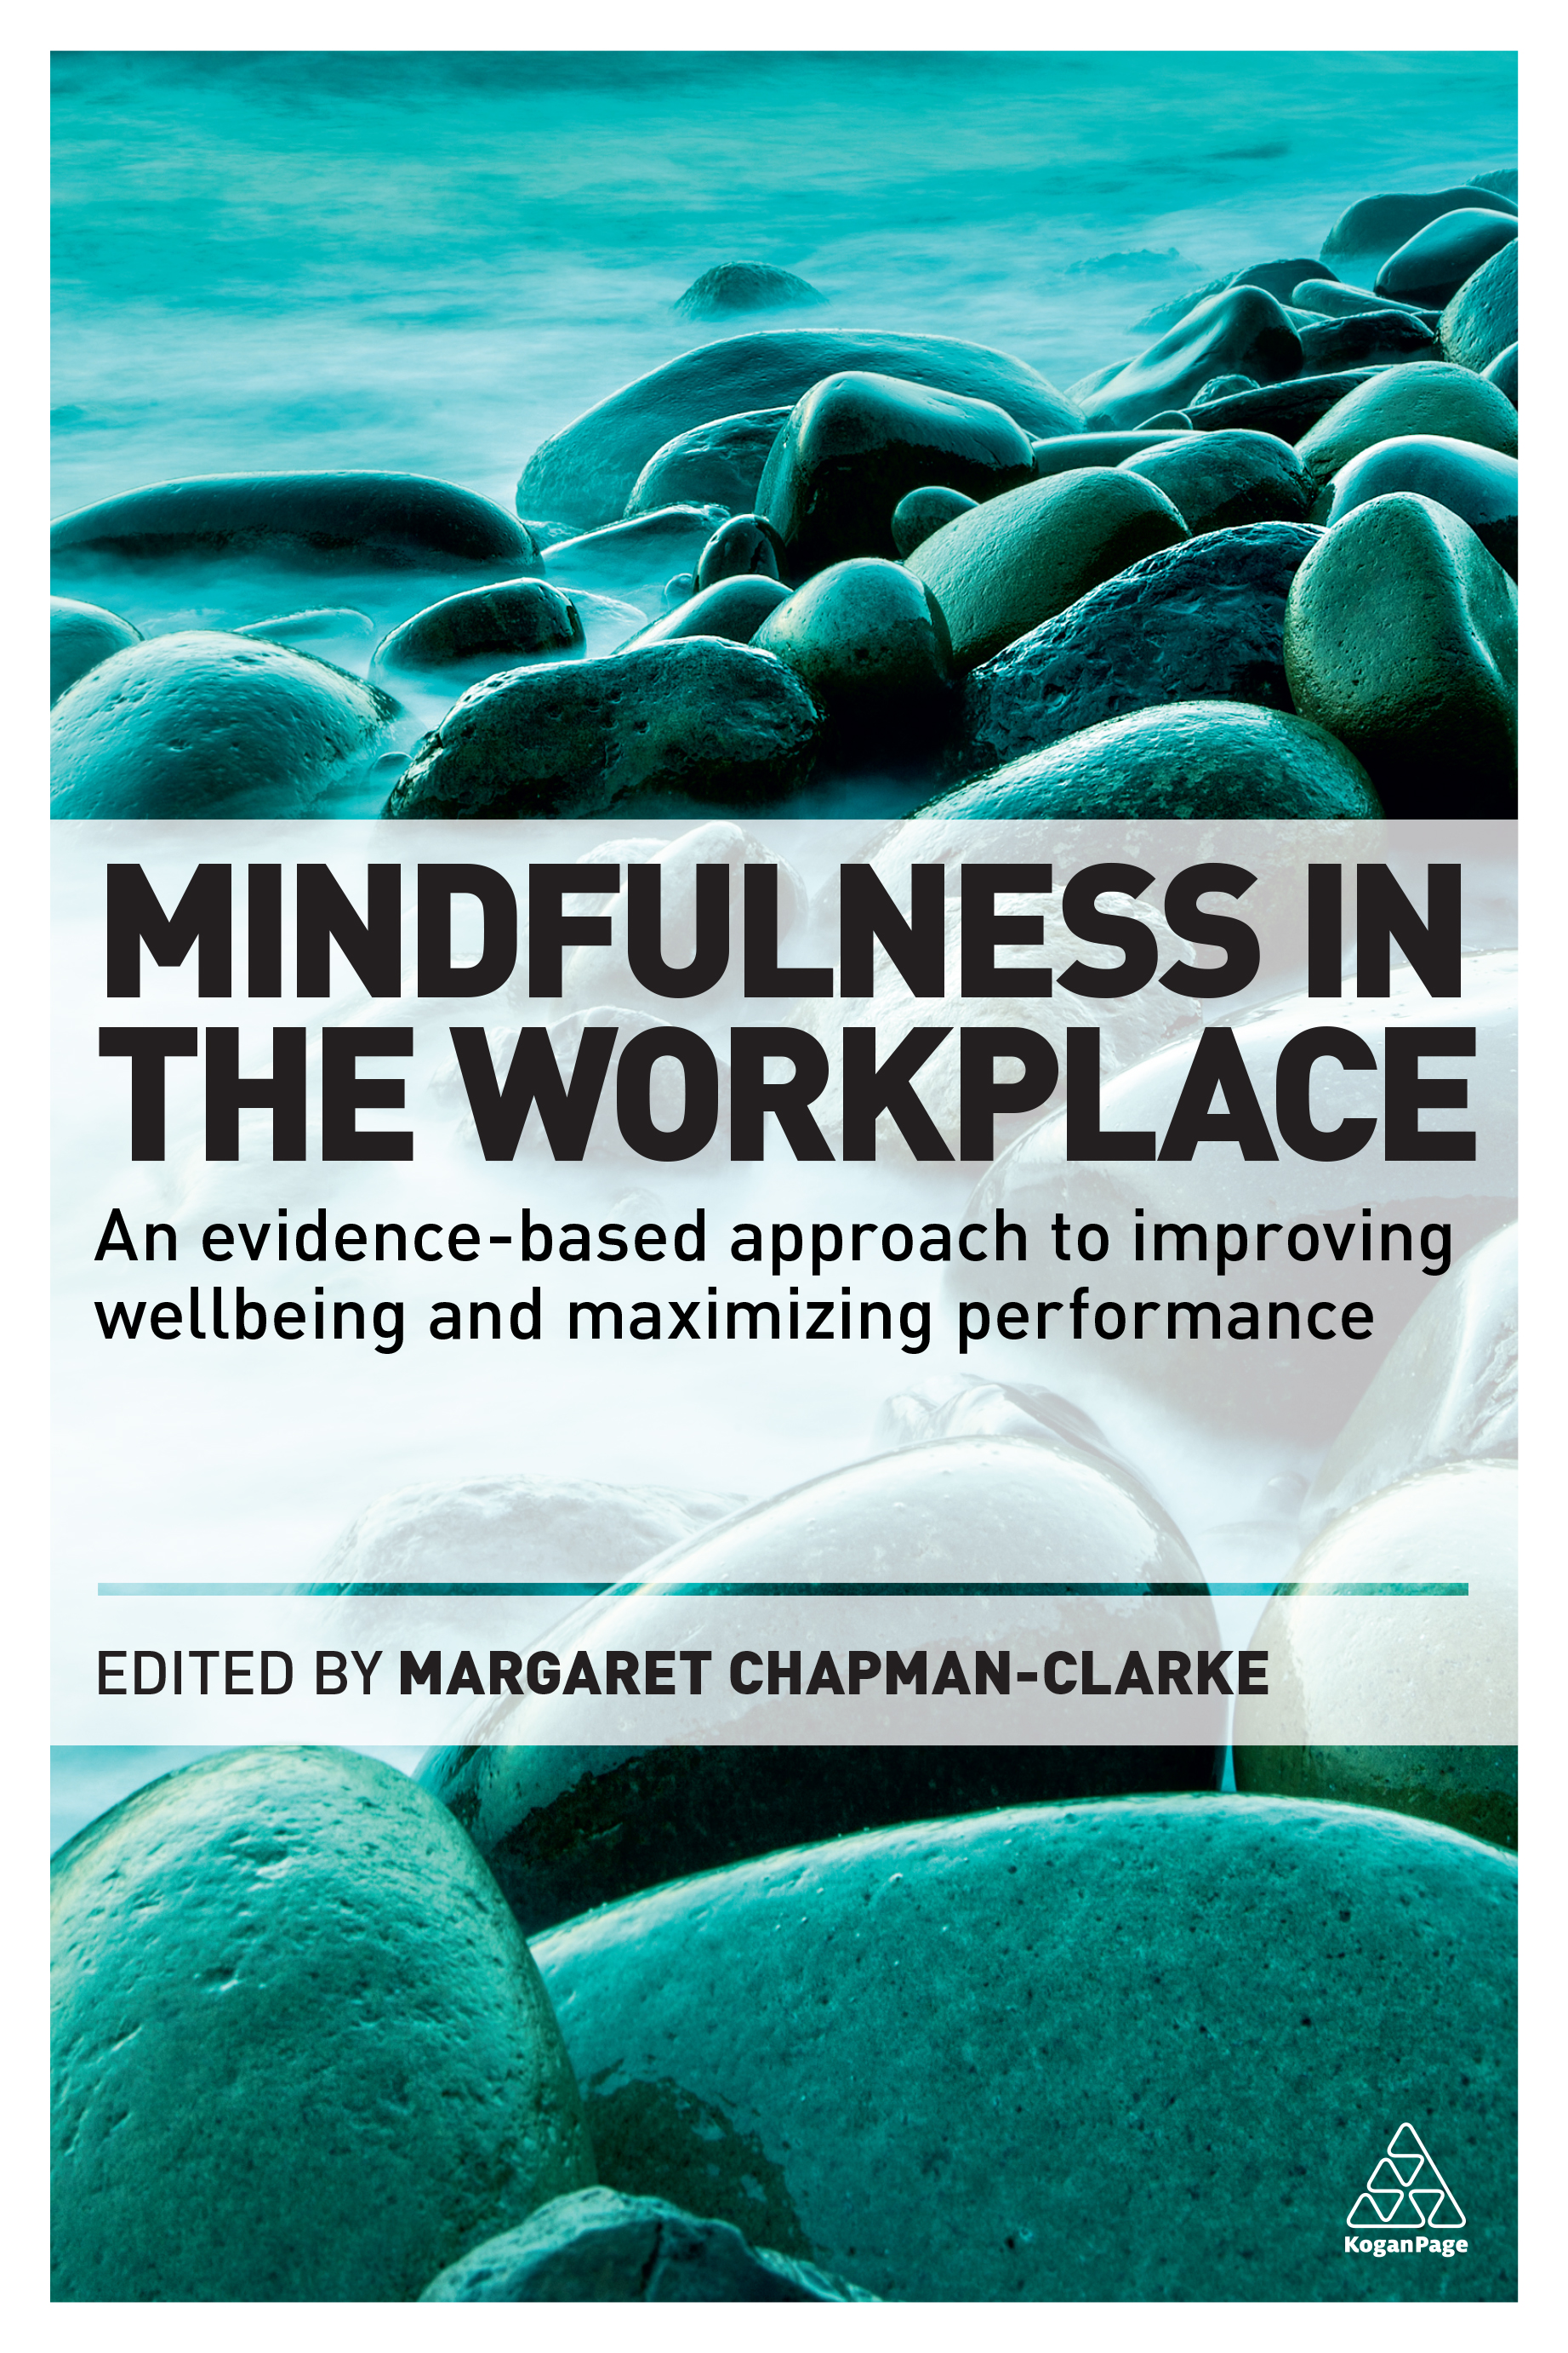 Download Ebook Mindfulness in the Workplace by Margaret A. Chapman-Clarke Pdf